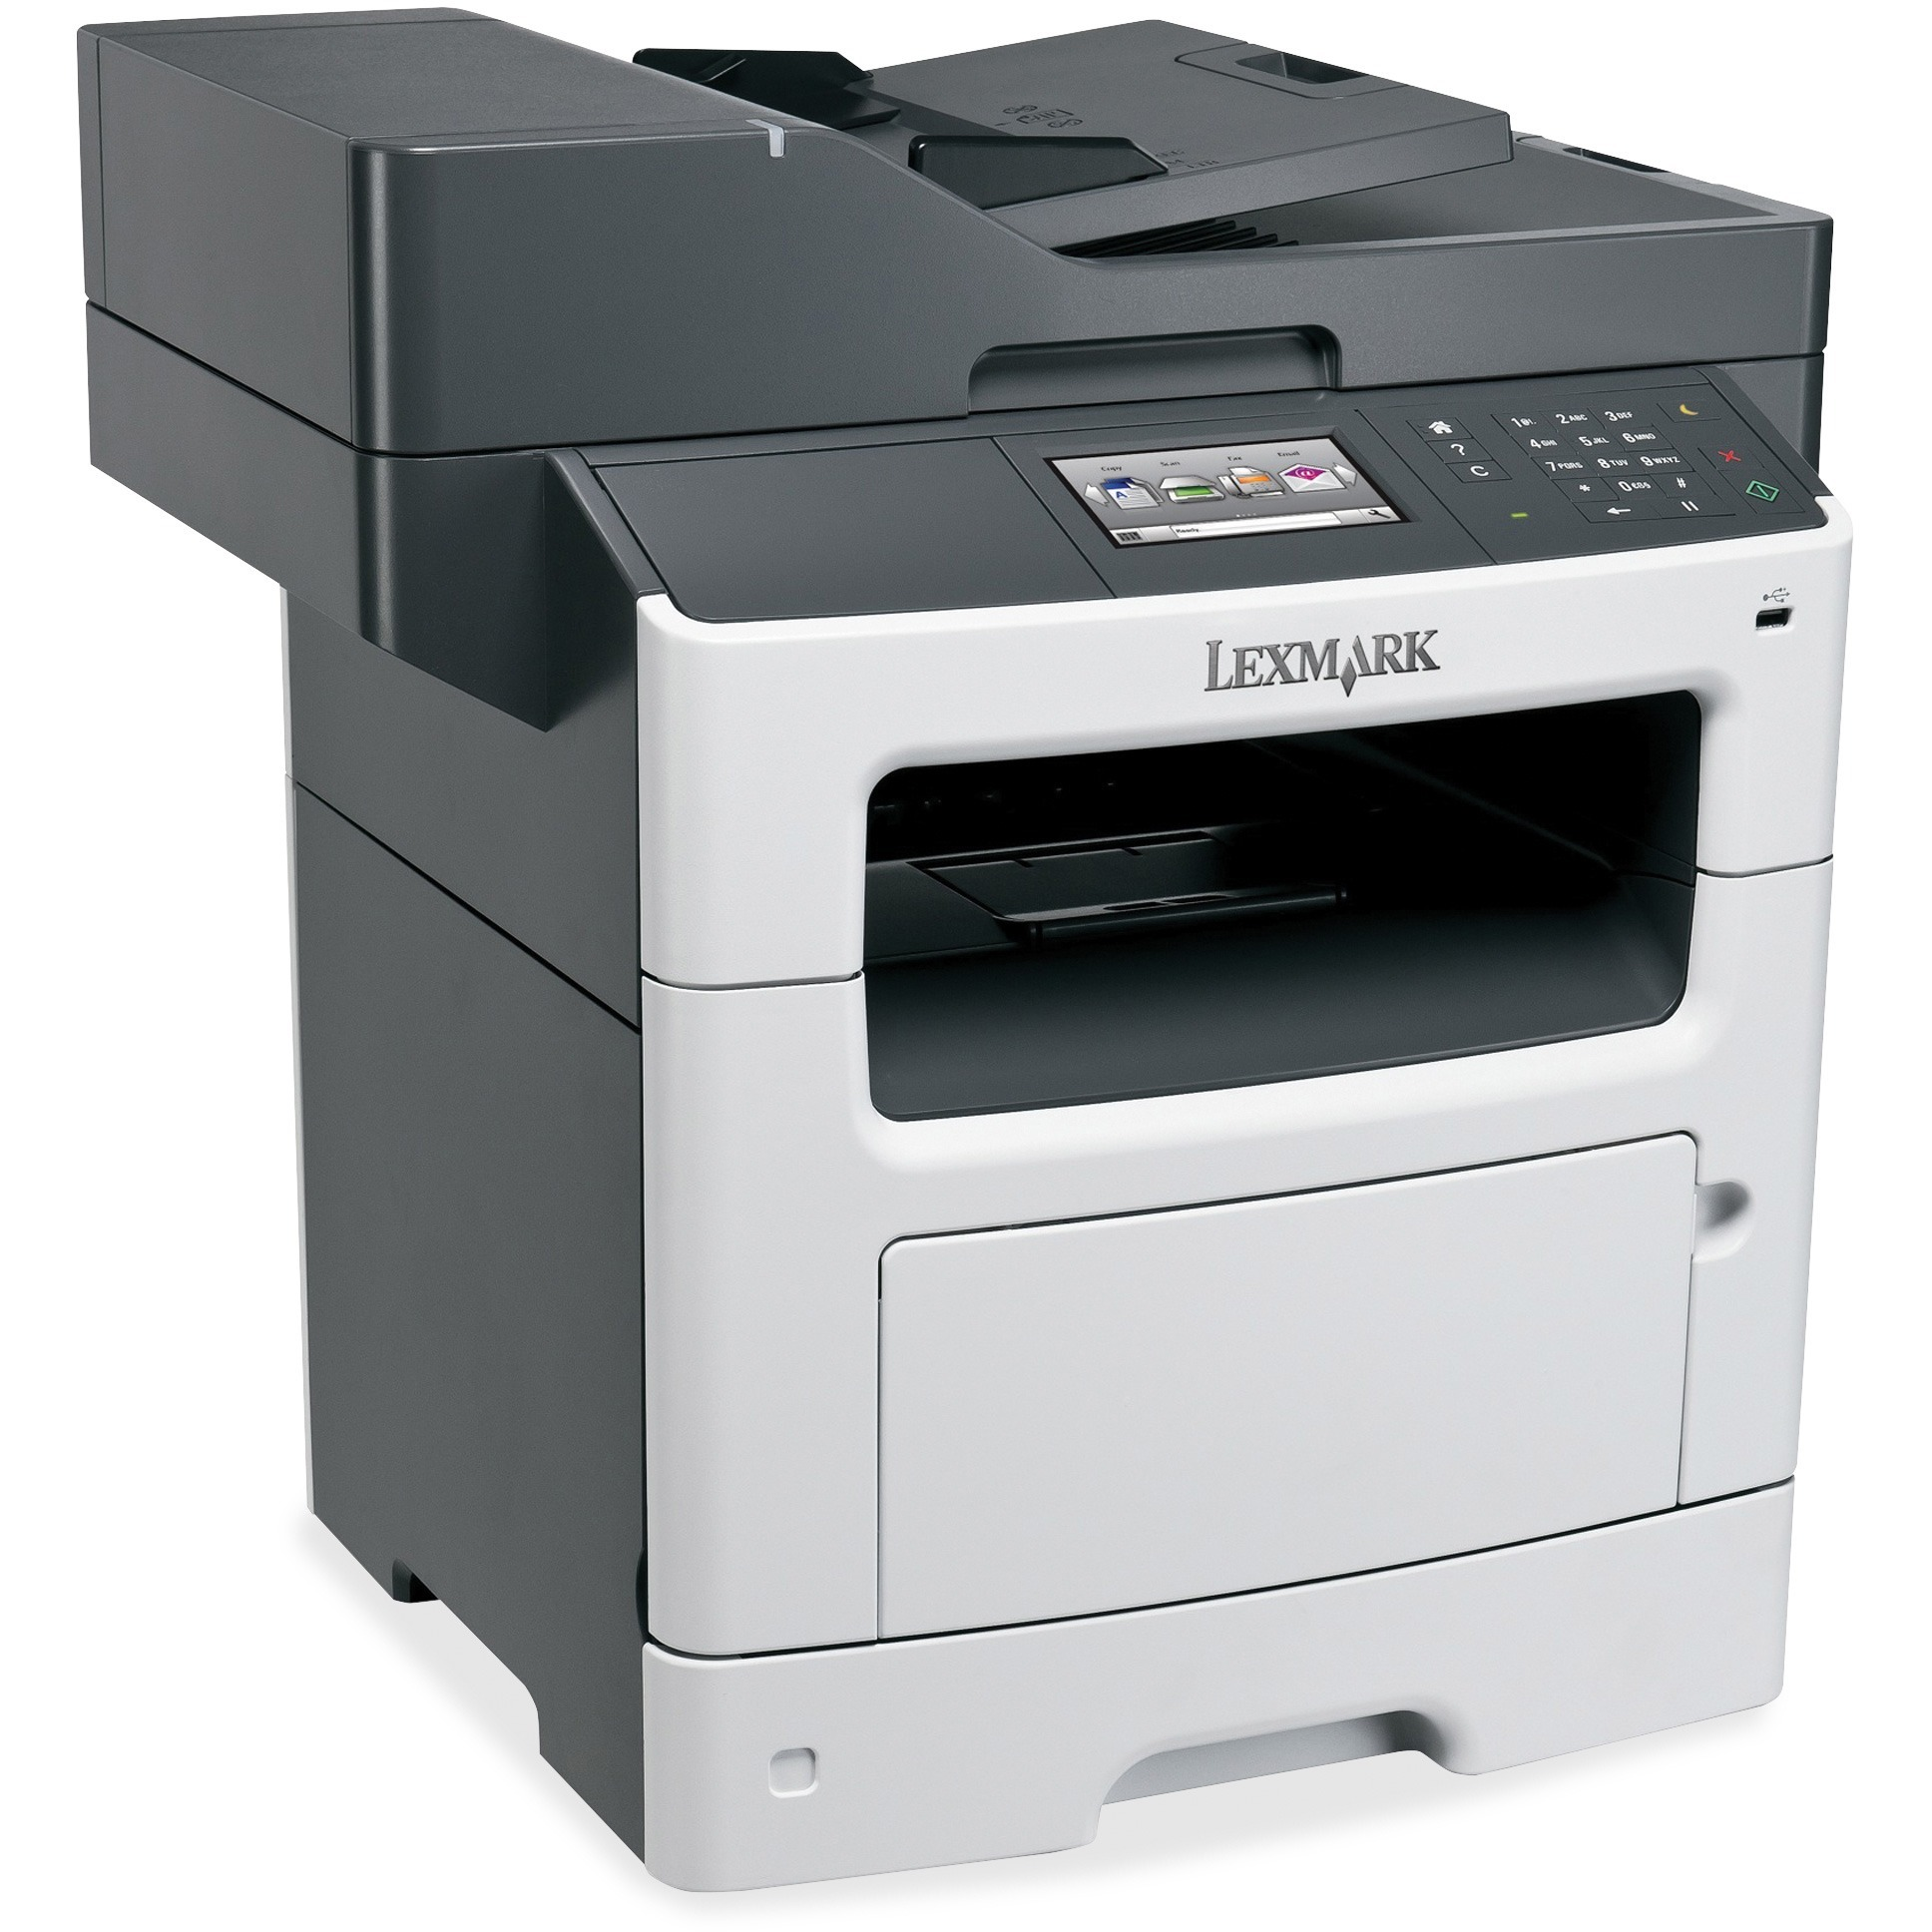 Lexmark MX510DE Laser Multifunction Printer - Monochrome - Plain Paper Print - Desktop, Gray, White